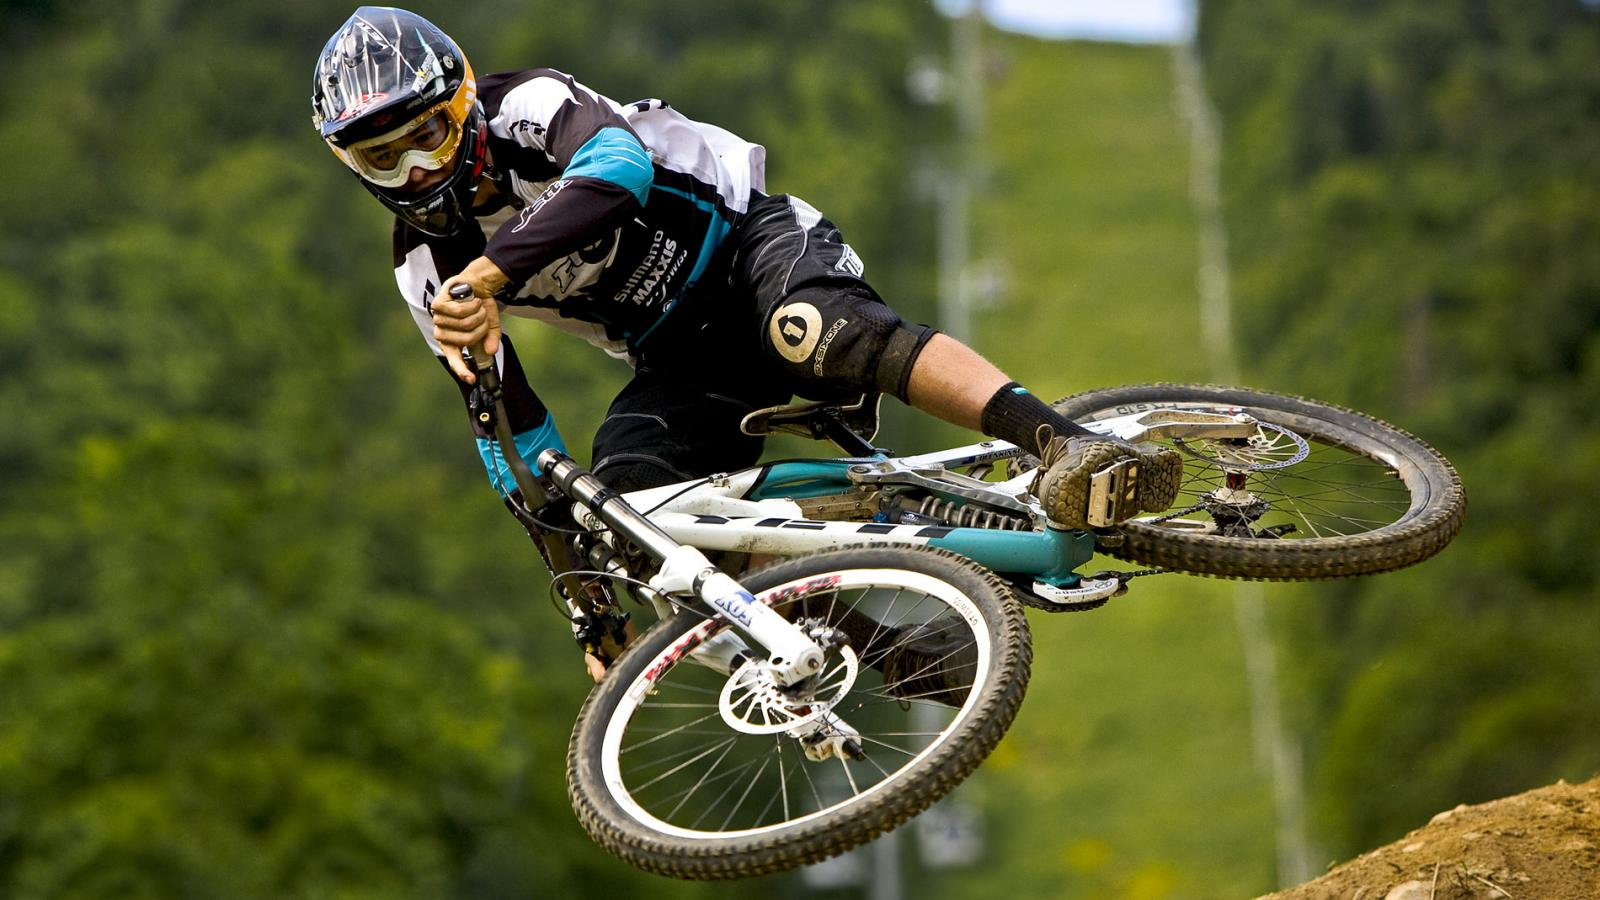 Free Download Mountain Bikes Wallpaper 170082 High Quality And Resolution 1600x900 For Your Desktop Mobile Tablet Explore 44 Mountain Bike Wallpapers High Resolution Bicycle Screensavers Wallpapers Mountain Biking Desktop Wallpaper